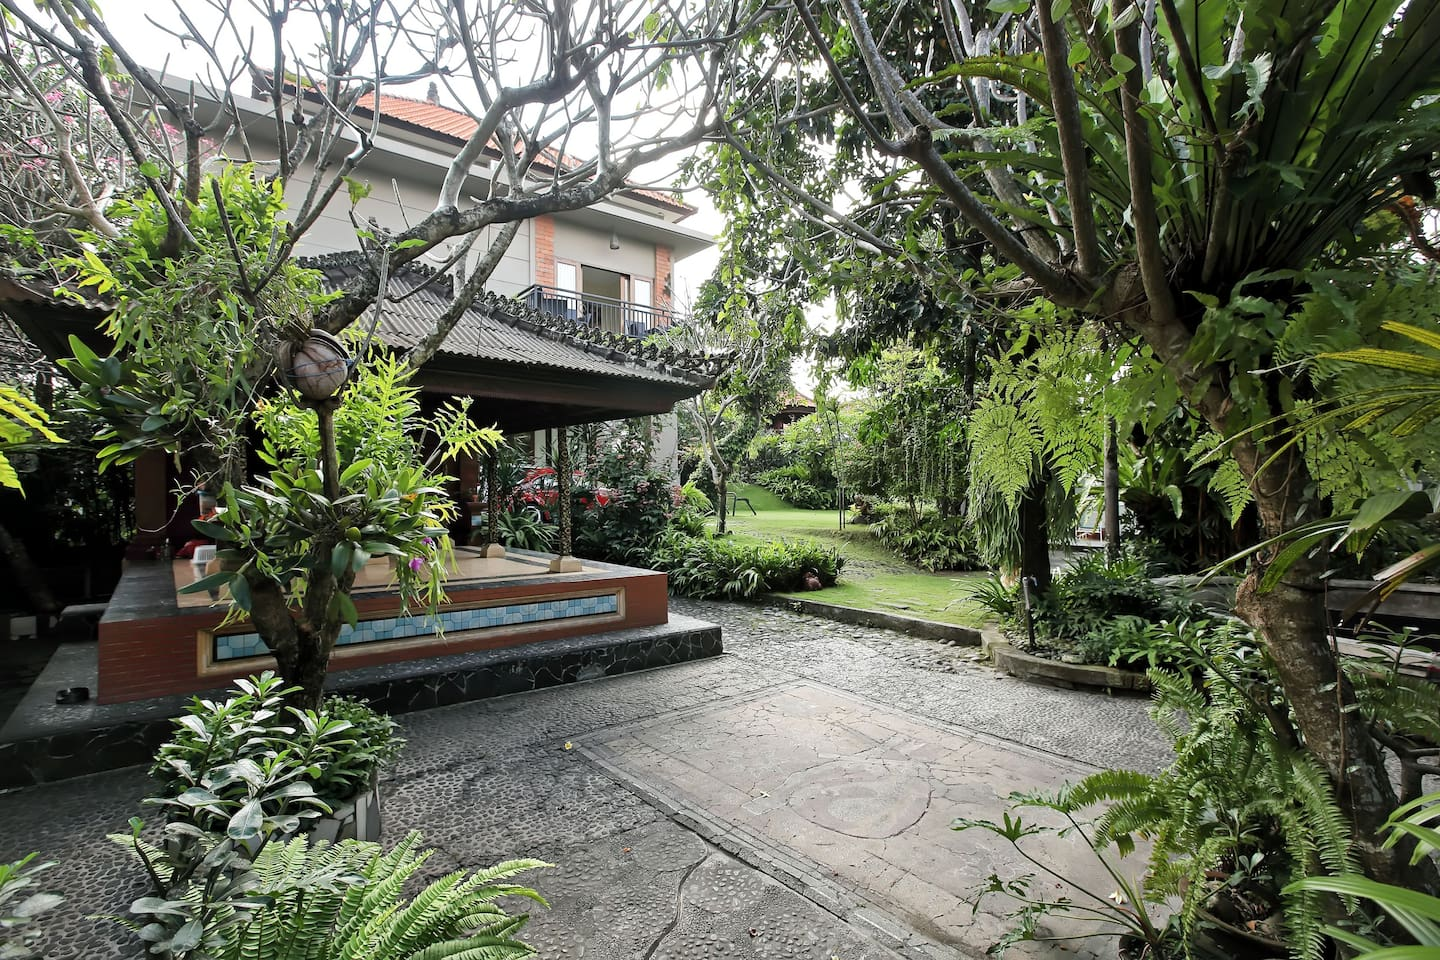 Our house compound surrounded by lush tropical garden